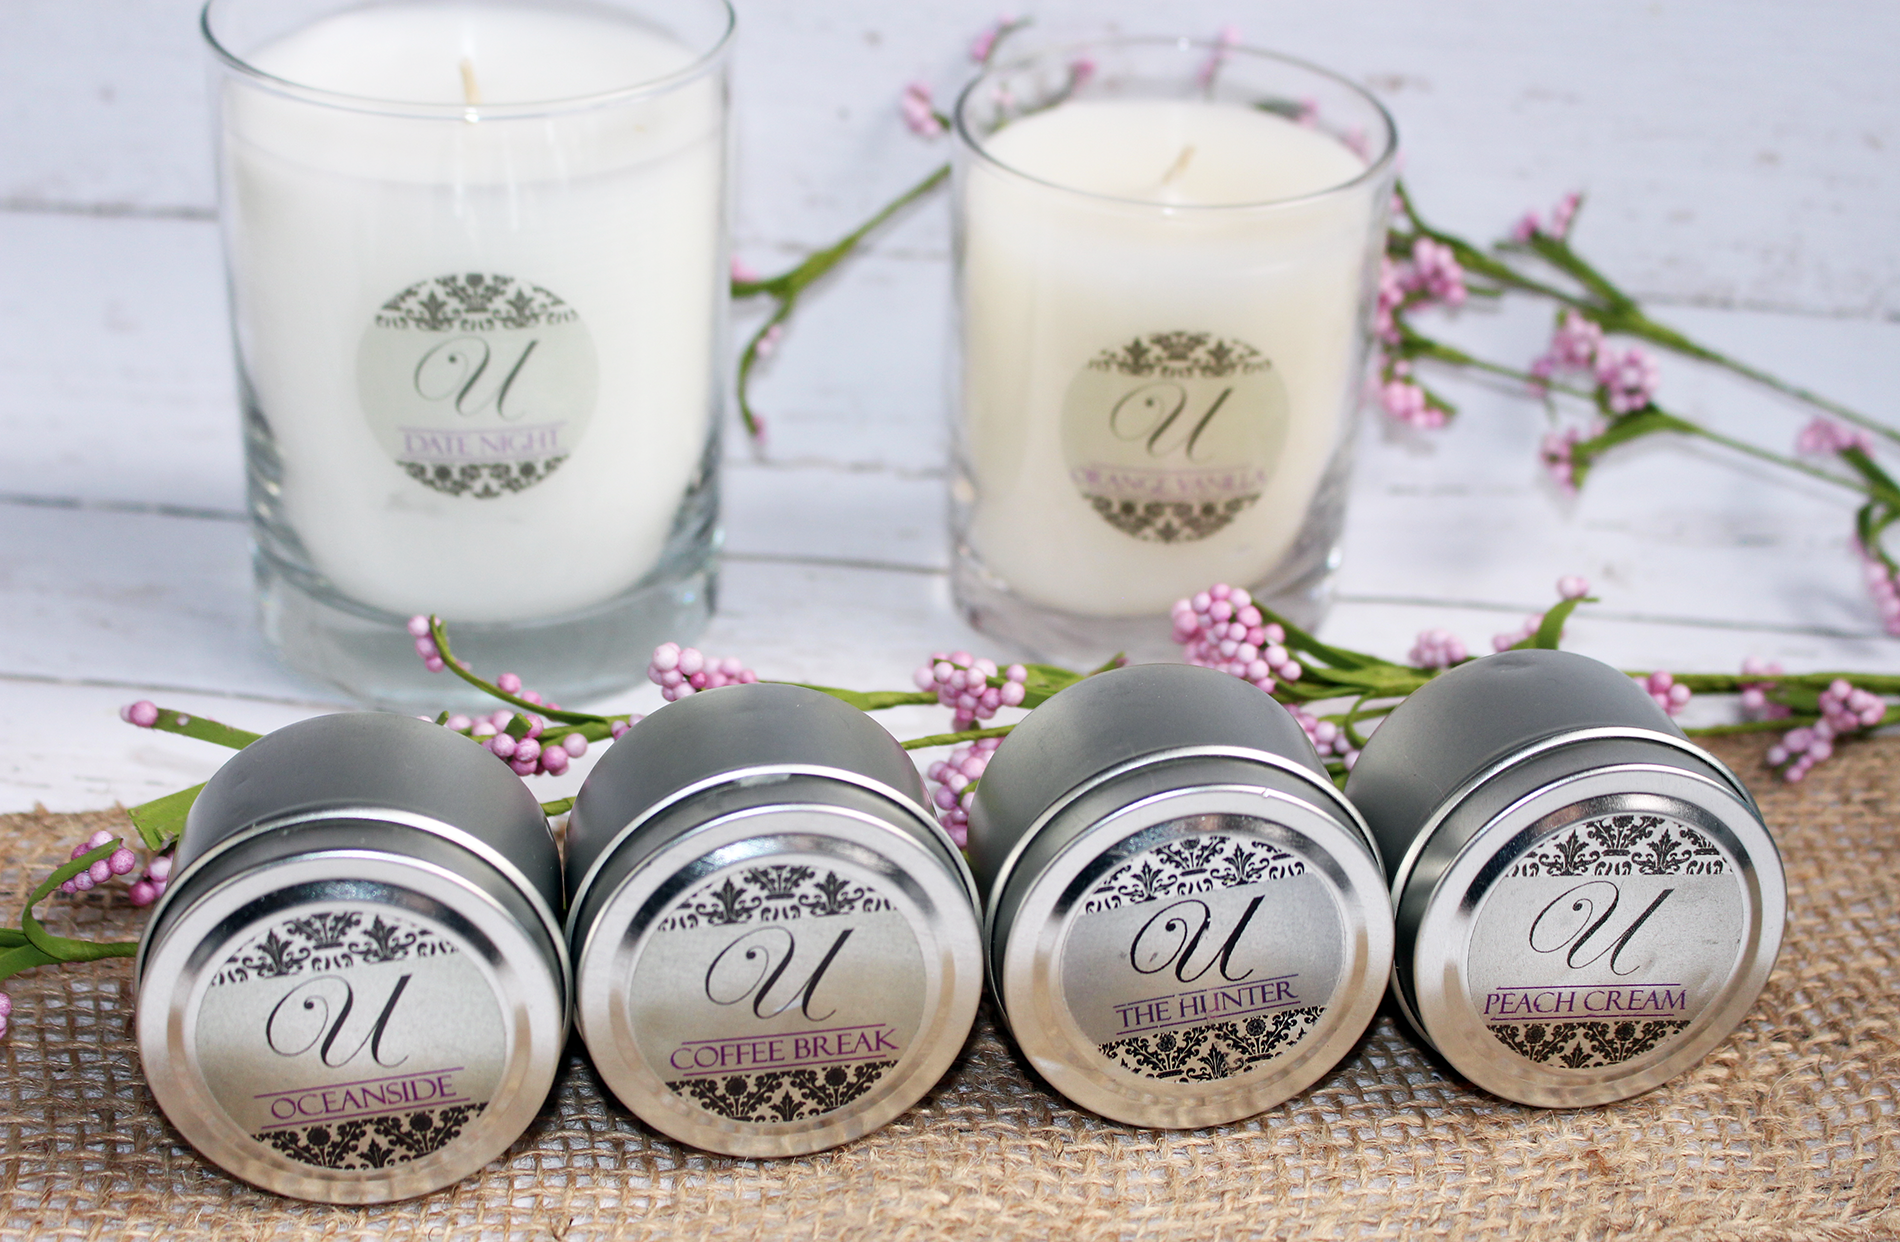 Beautiful Scents and Surprises With Unrivaled Candles